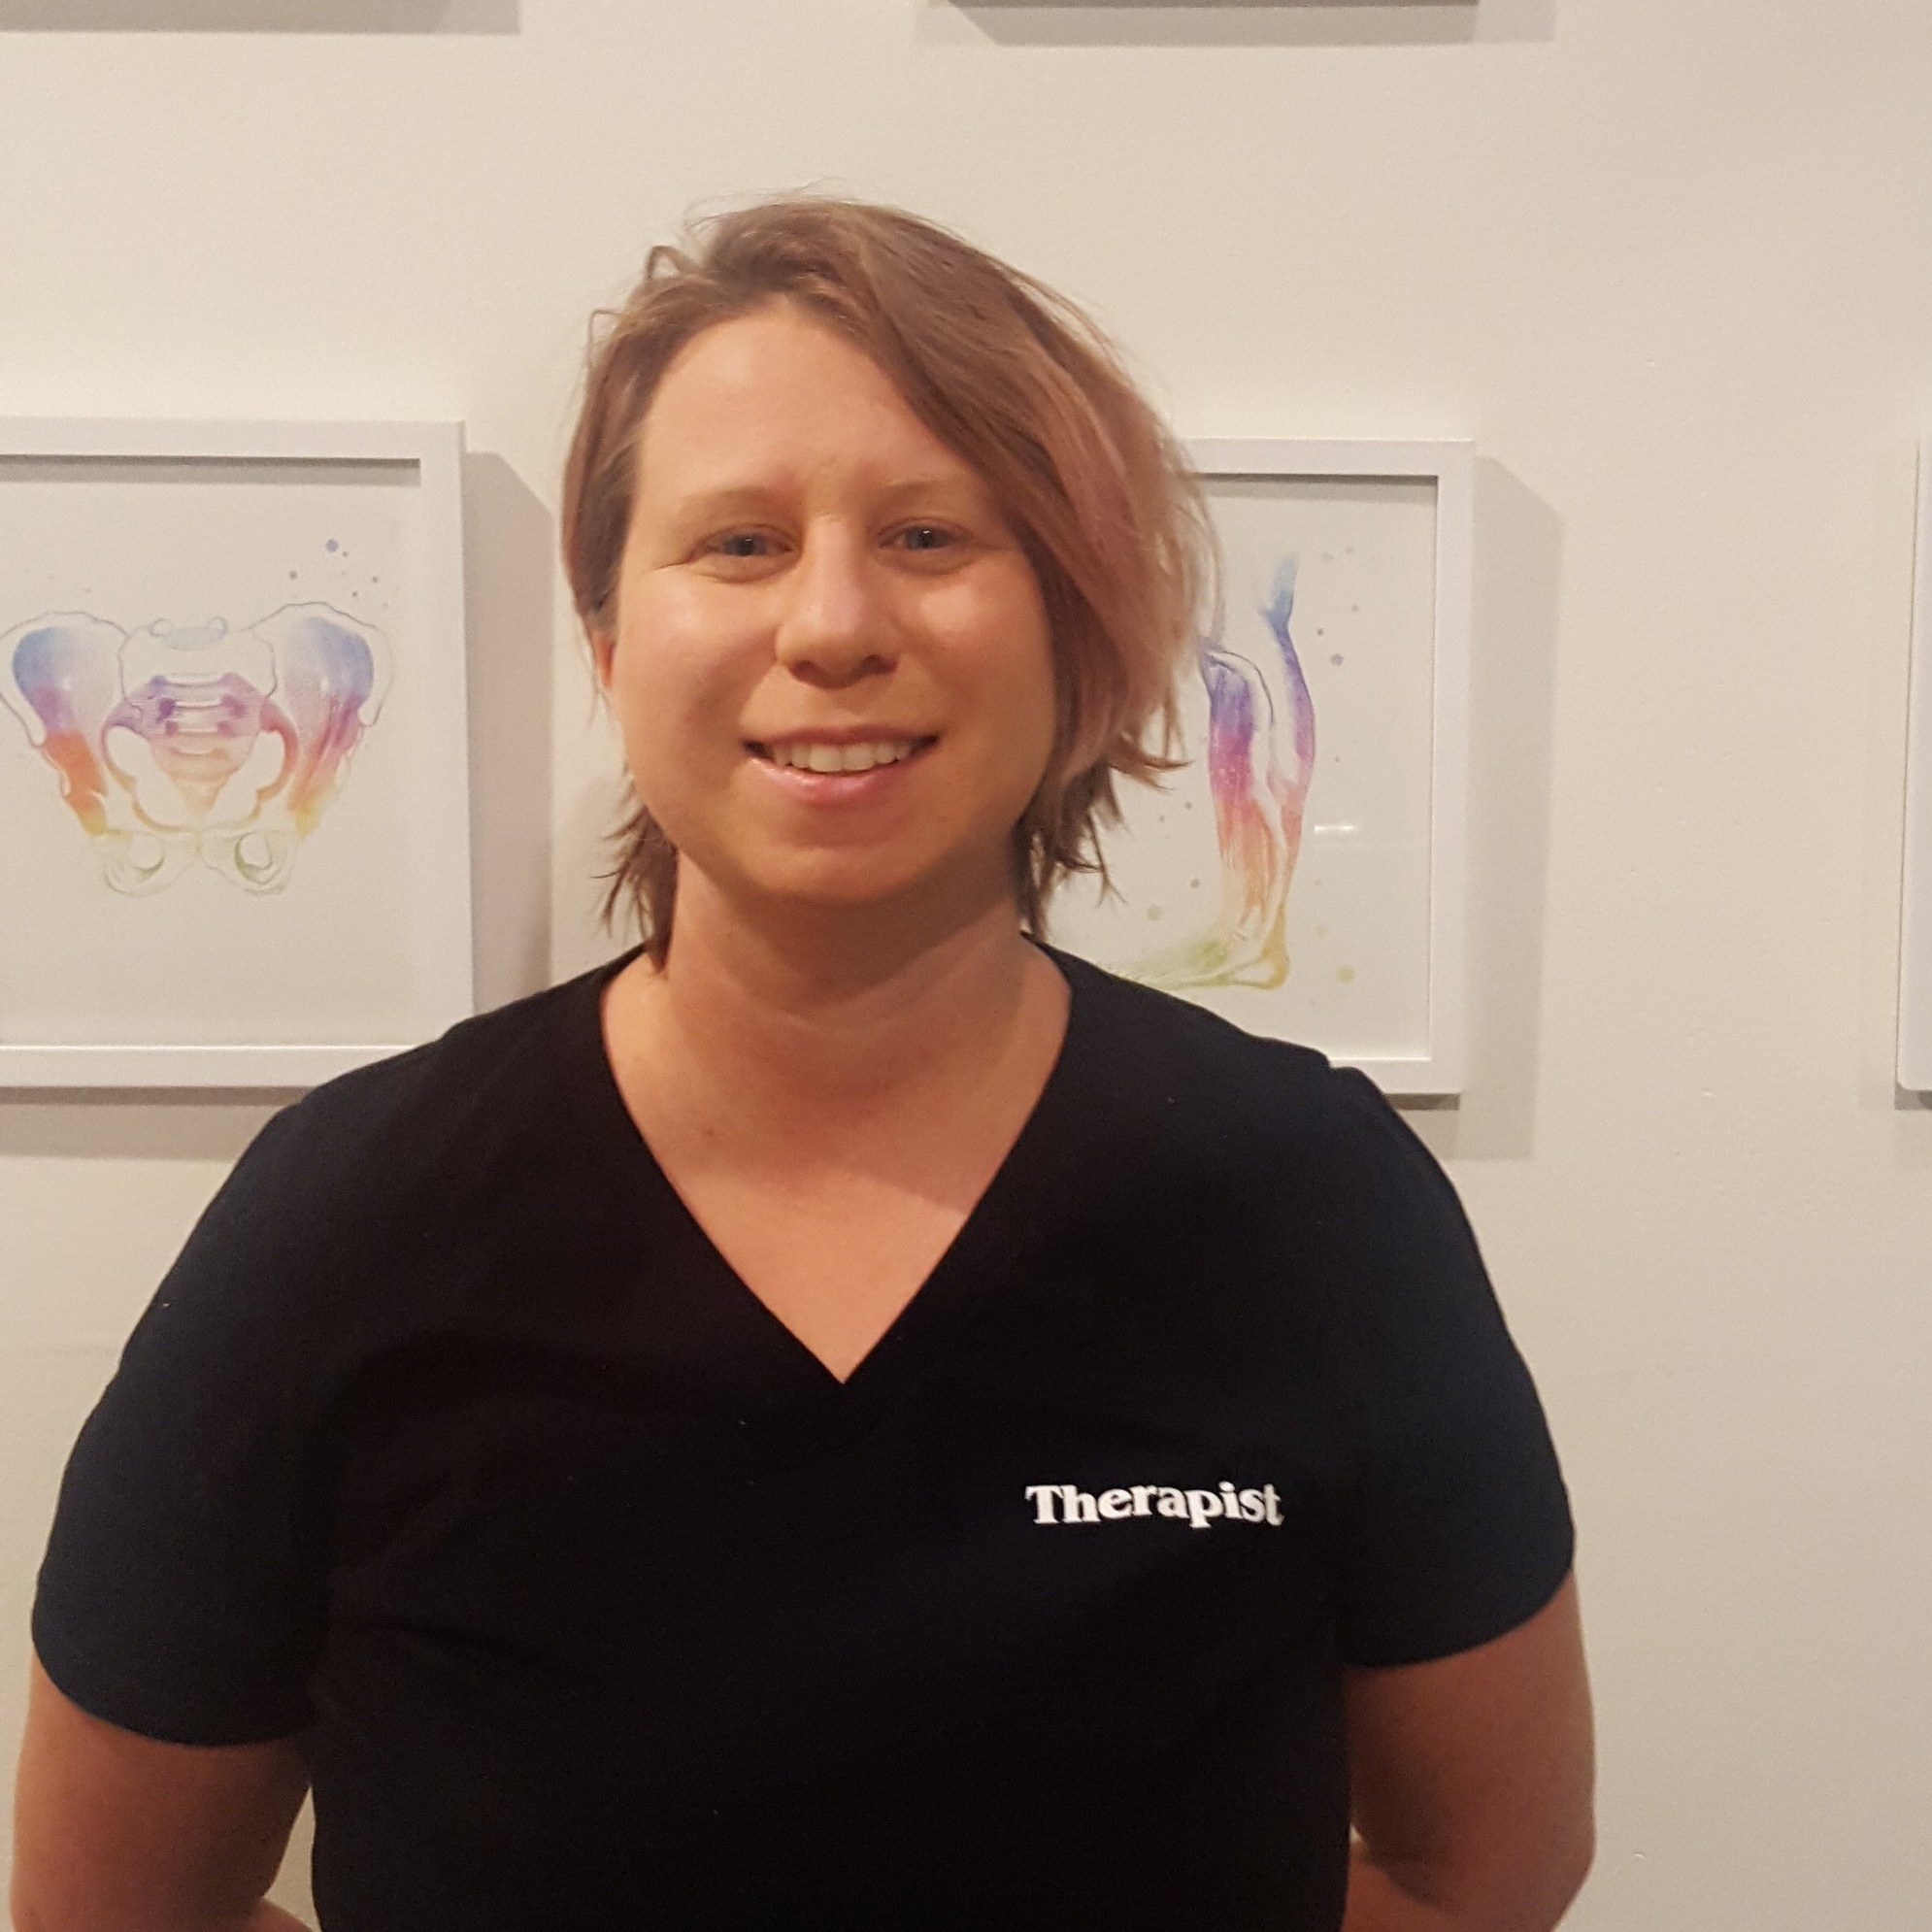 Rebecca - Certified Massage TherapistMy focus is on pain relief, improving sleep, and relaxing the nervous system. I customize a massage flow using the styles of Swedish, Lymphatic, Neural muscular therapy to create balance in the body.